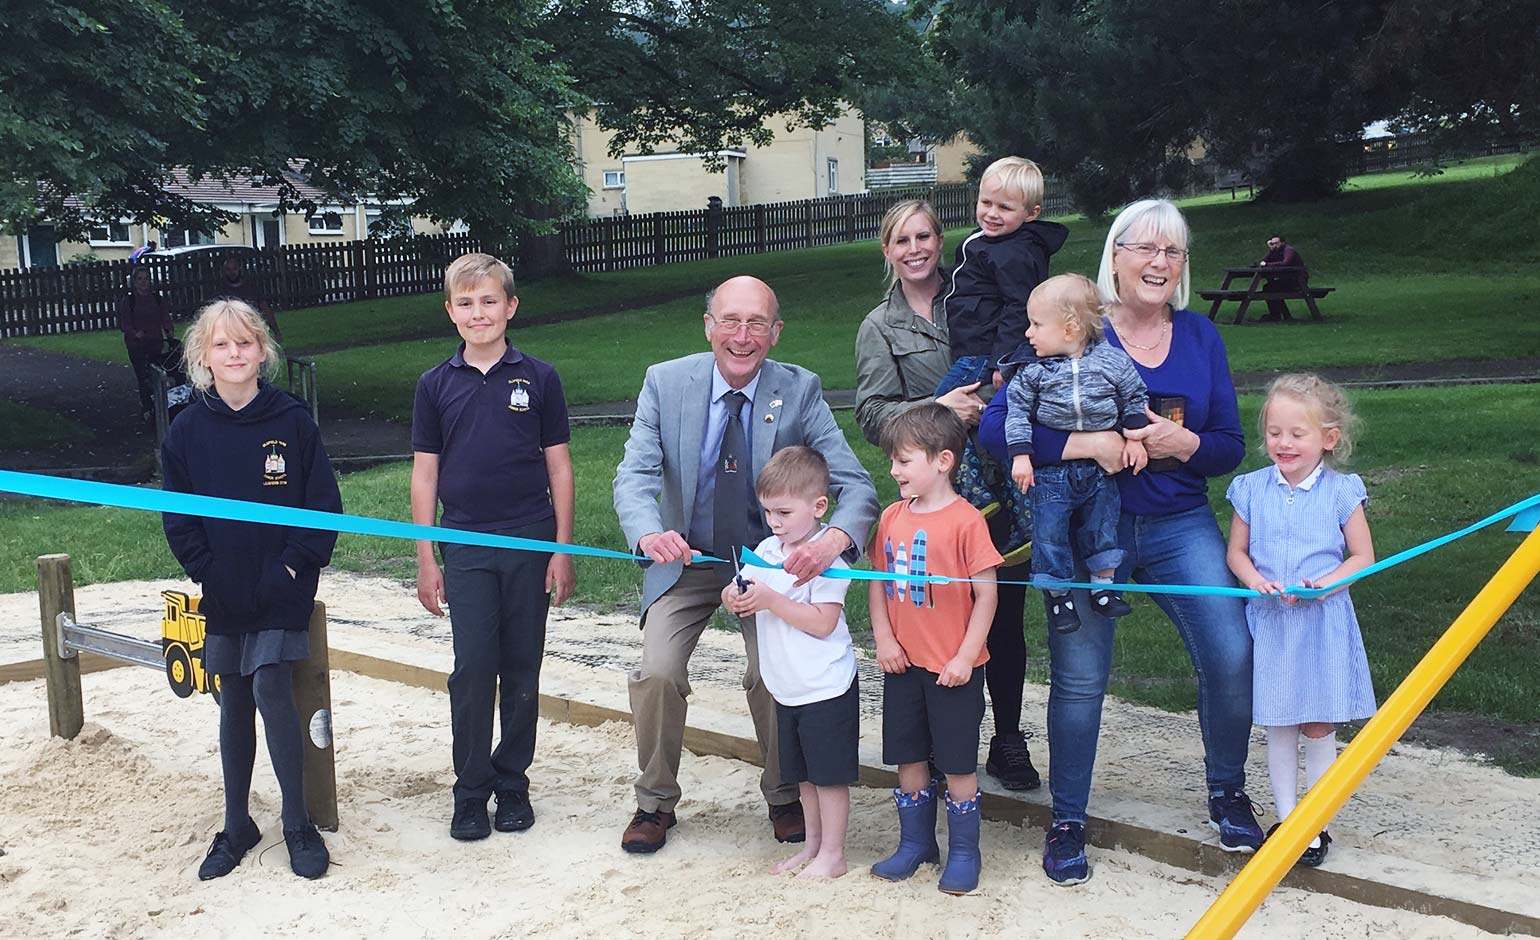 Summer of fun for children thanks to new equipment at Sandpits play area